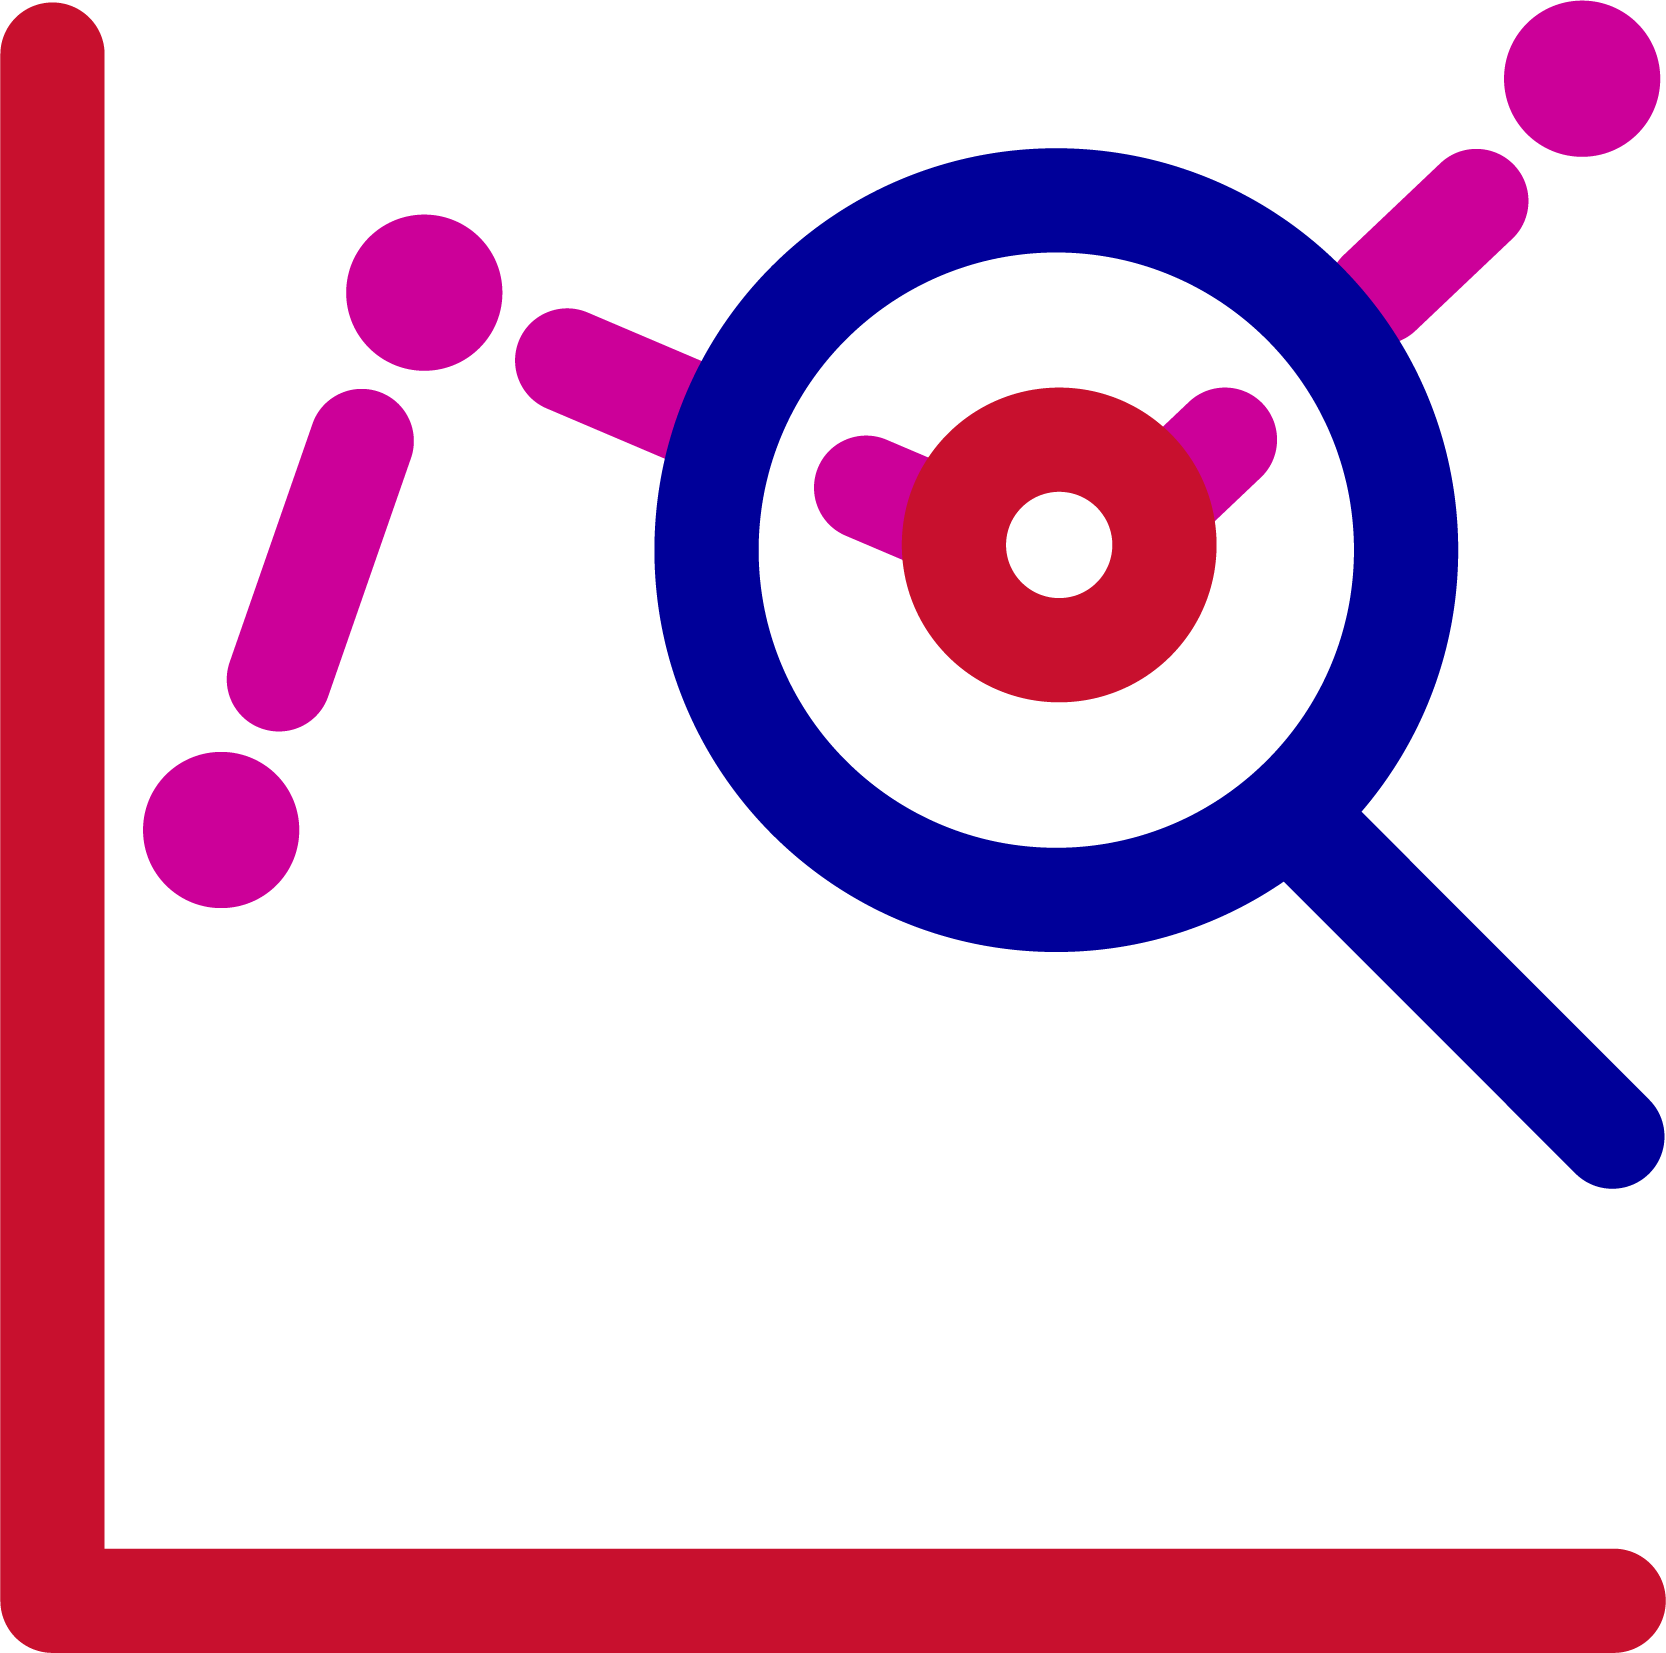 jnj_icon_innovation_analysis_multi_rgbpng_jnjiconinnovationanalysismultirgb.png